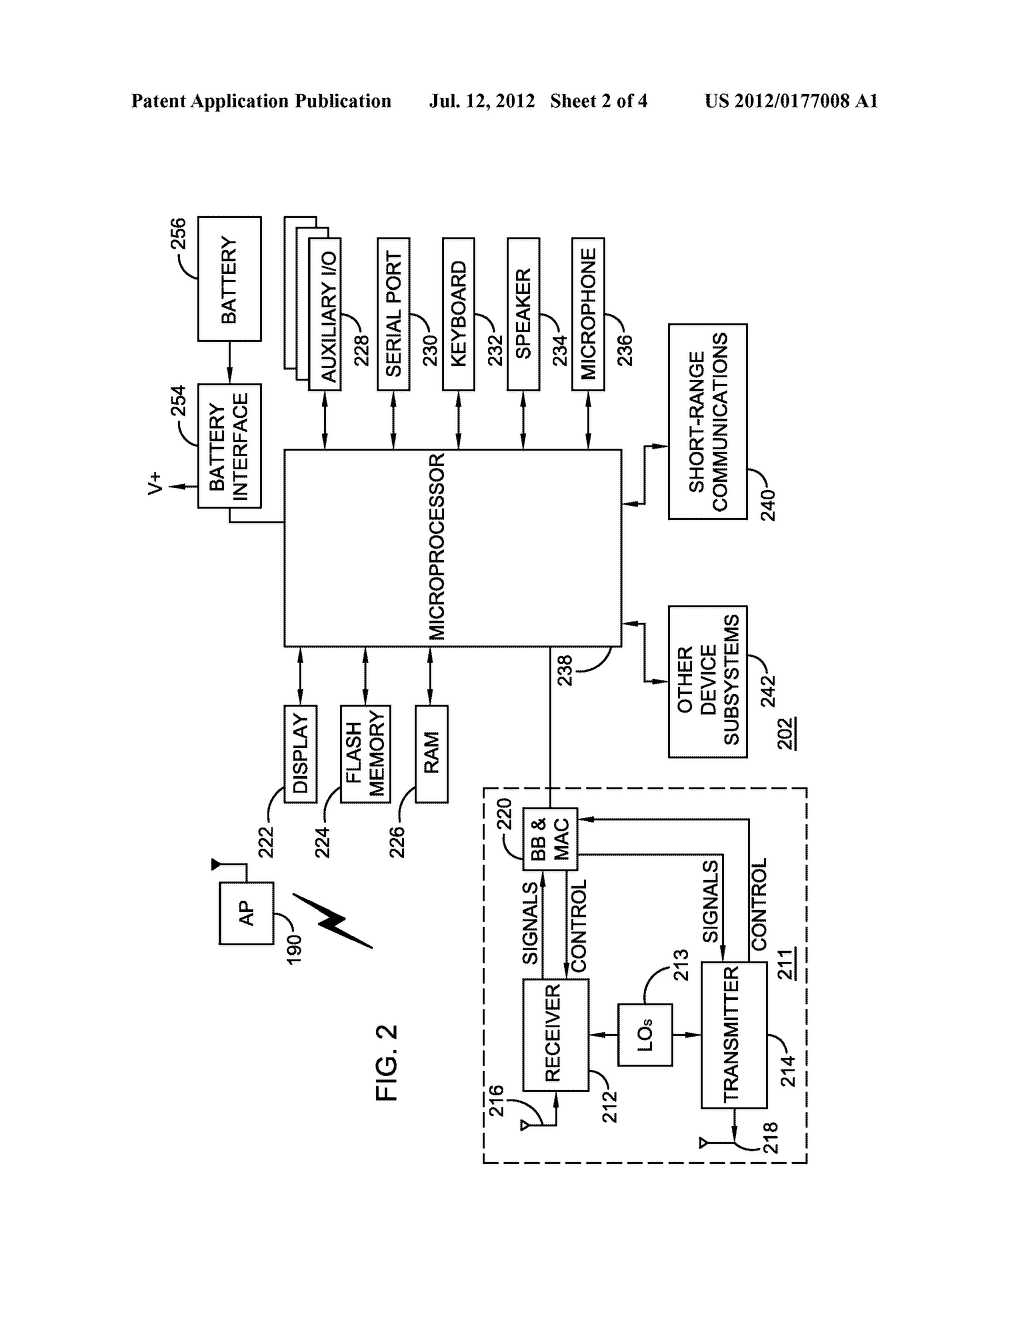 local area network diagram best wiring library Office Network Diagram global virtual local area network for voice munication sessions in a wireless local area network